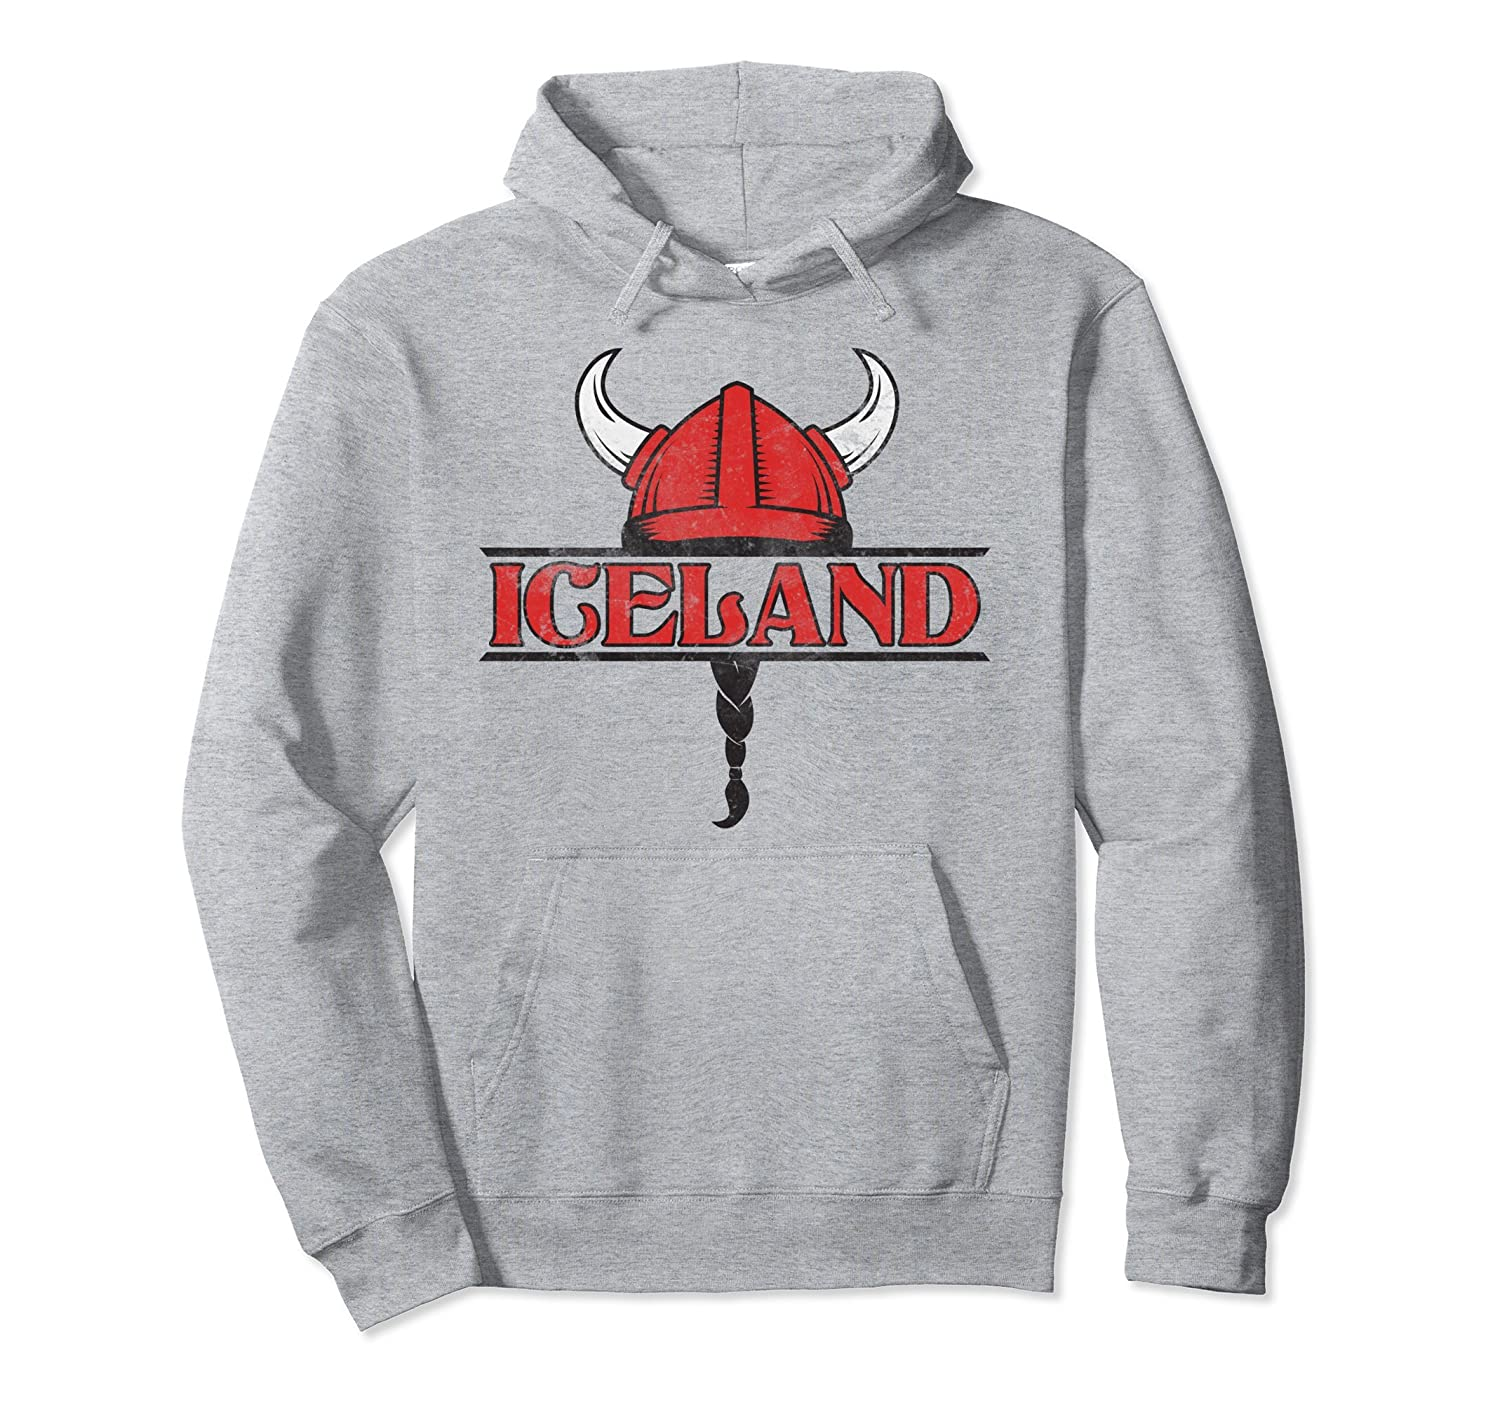 2018 Iceland World Soccer Championship Vintage Fan Hoodie-Awarplus